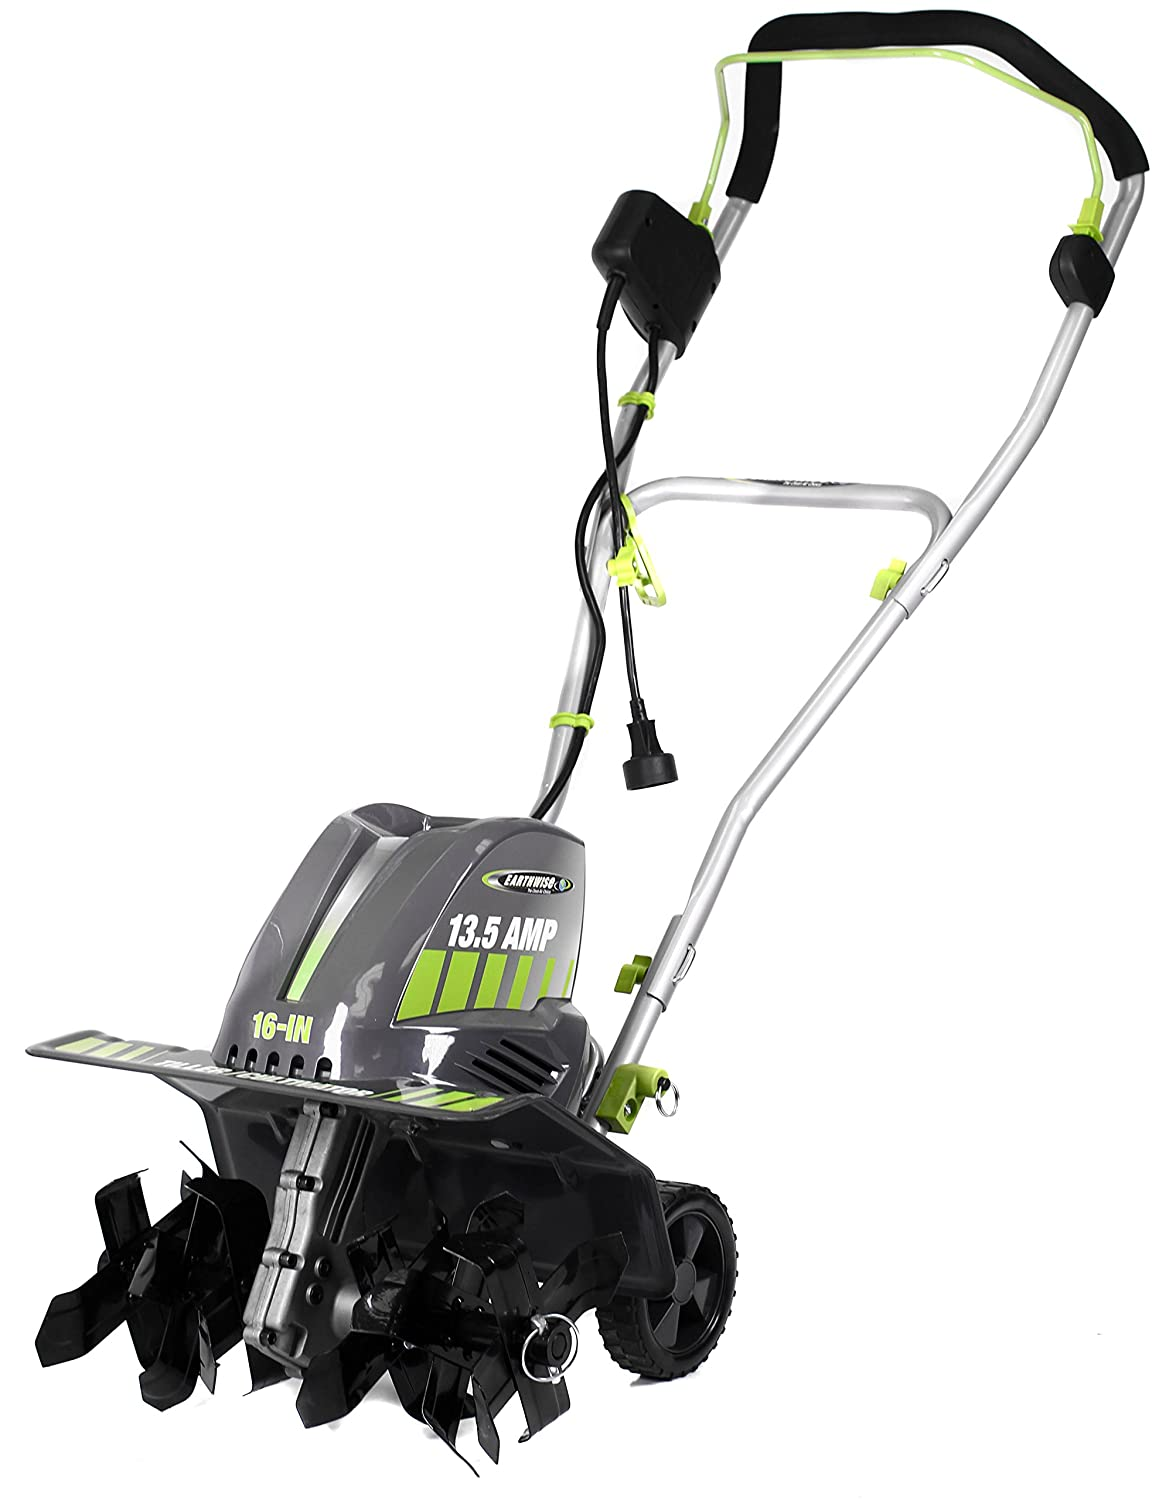 Earthwise TC70016 16-Inch 13.5 Amp Corded Electric Tiller Cultivator, Grey